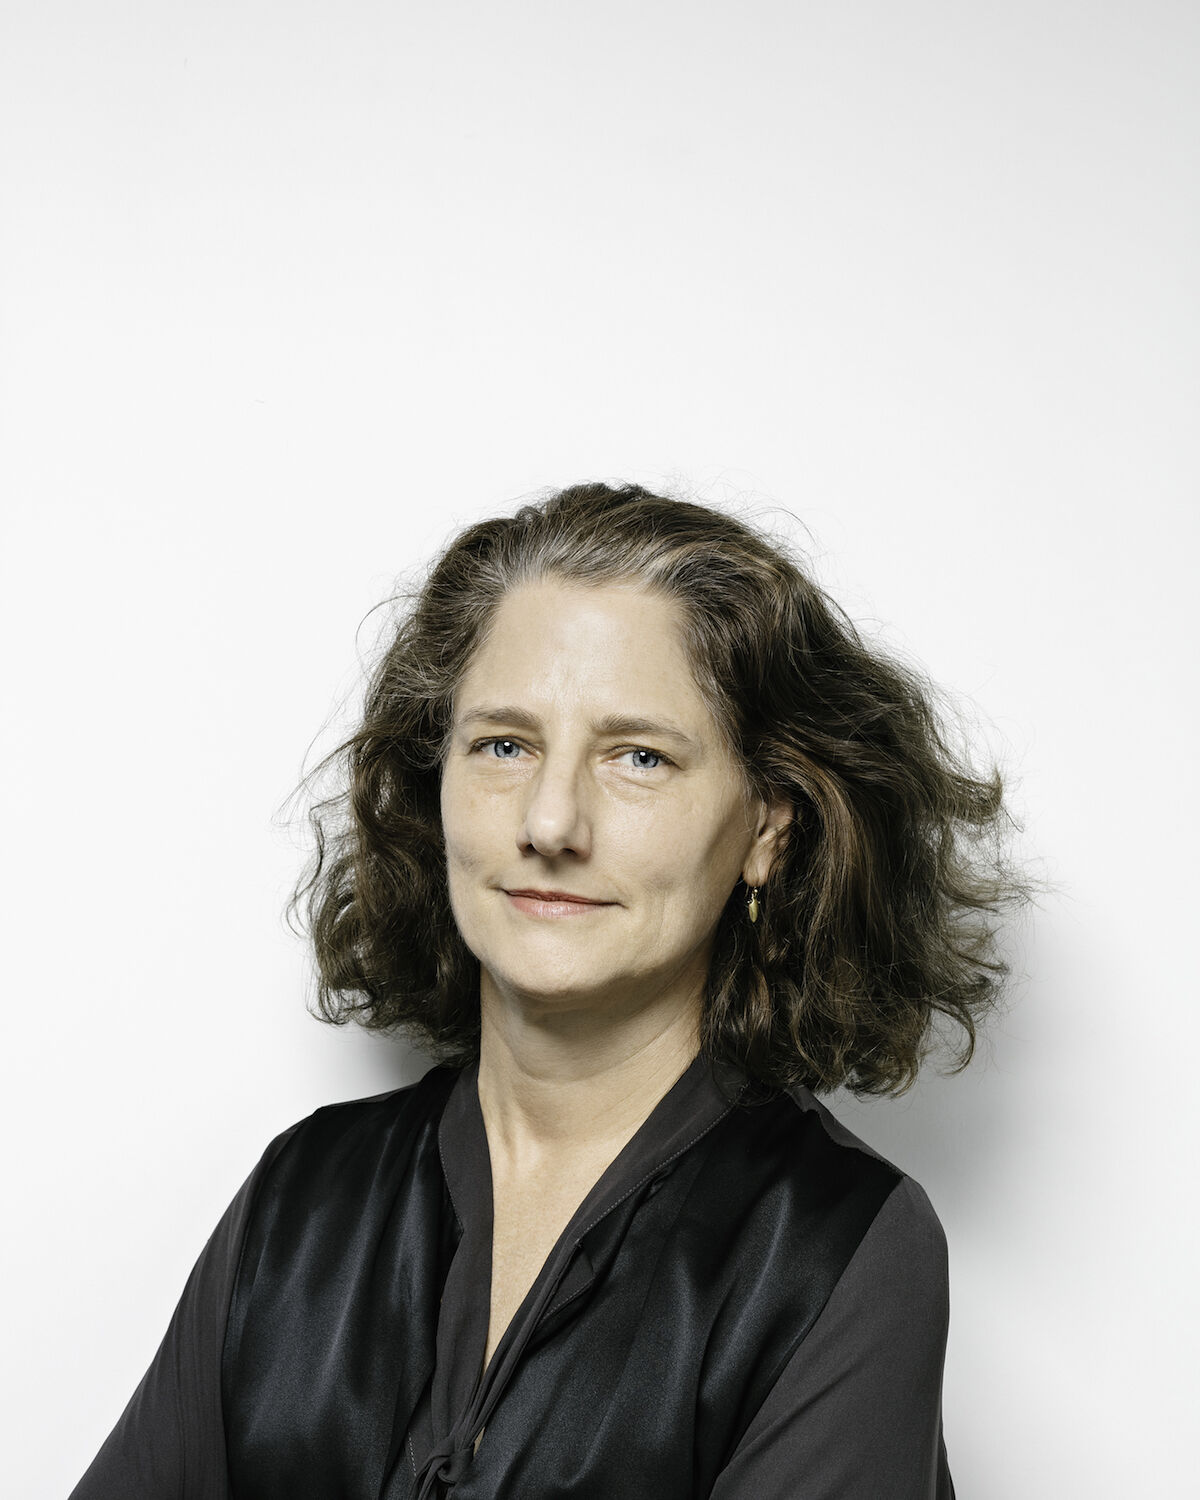 Jennifer Gross, Executive Director, Hauser & Wirth Institute. Photo by Axel Dupeux, courtesy Hauser & Wirth Institut